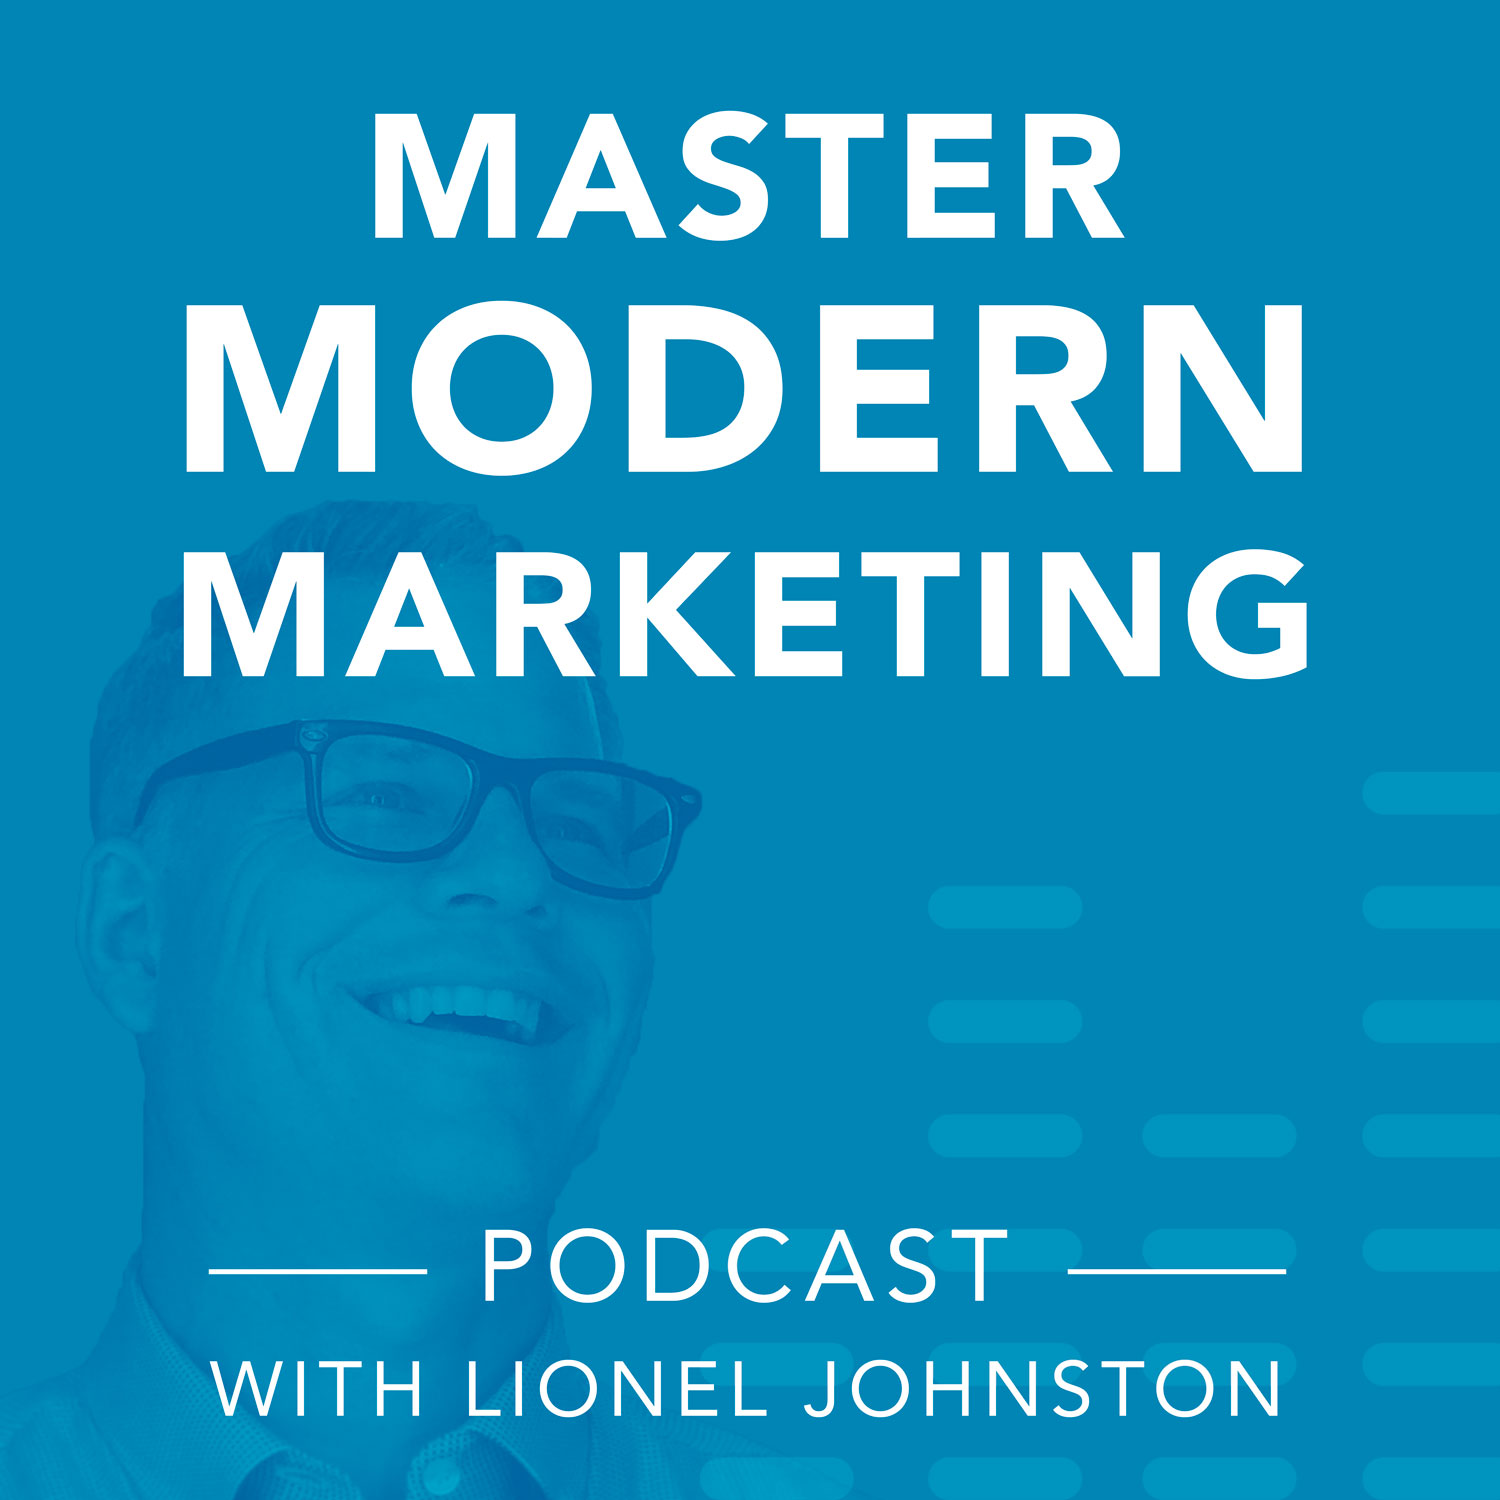 Master Modern Marketing Podcast: Real Talk about truck driver recruitment marketing show art